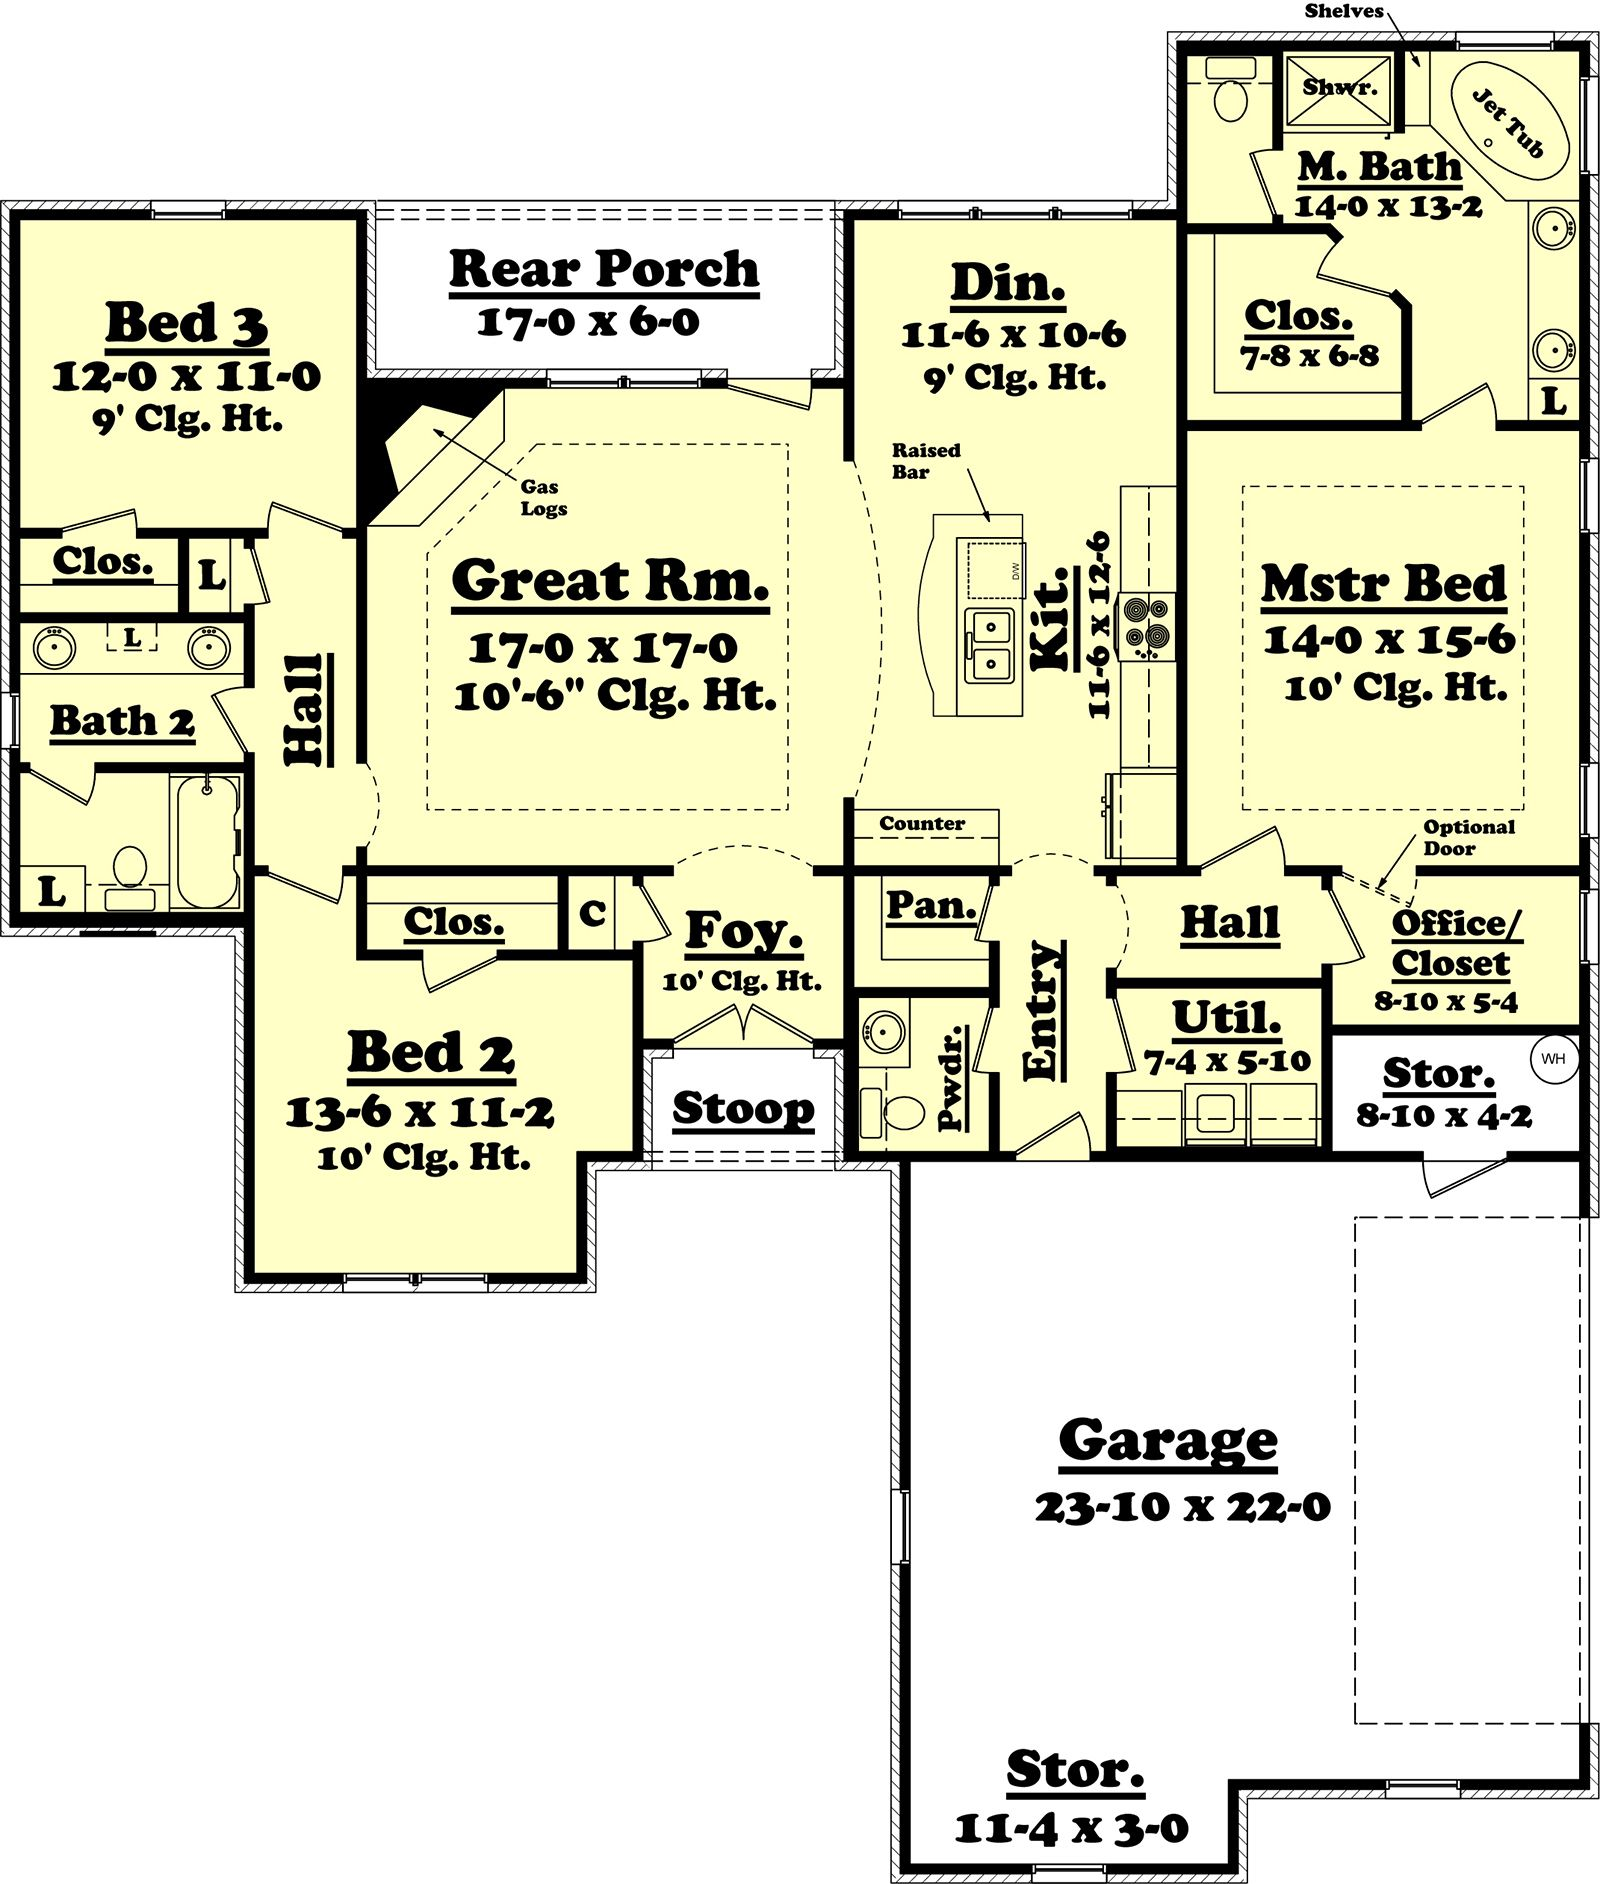 Craftsman Style House Plan   Beds Baths Sq Ft Plan      Craftsman Style House Plan   Beds Baths Sq Ft Plan     Floor Plan   Main Floor Plan   Houseplans com   Dream Home   Floor Plan   Pinterest